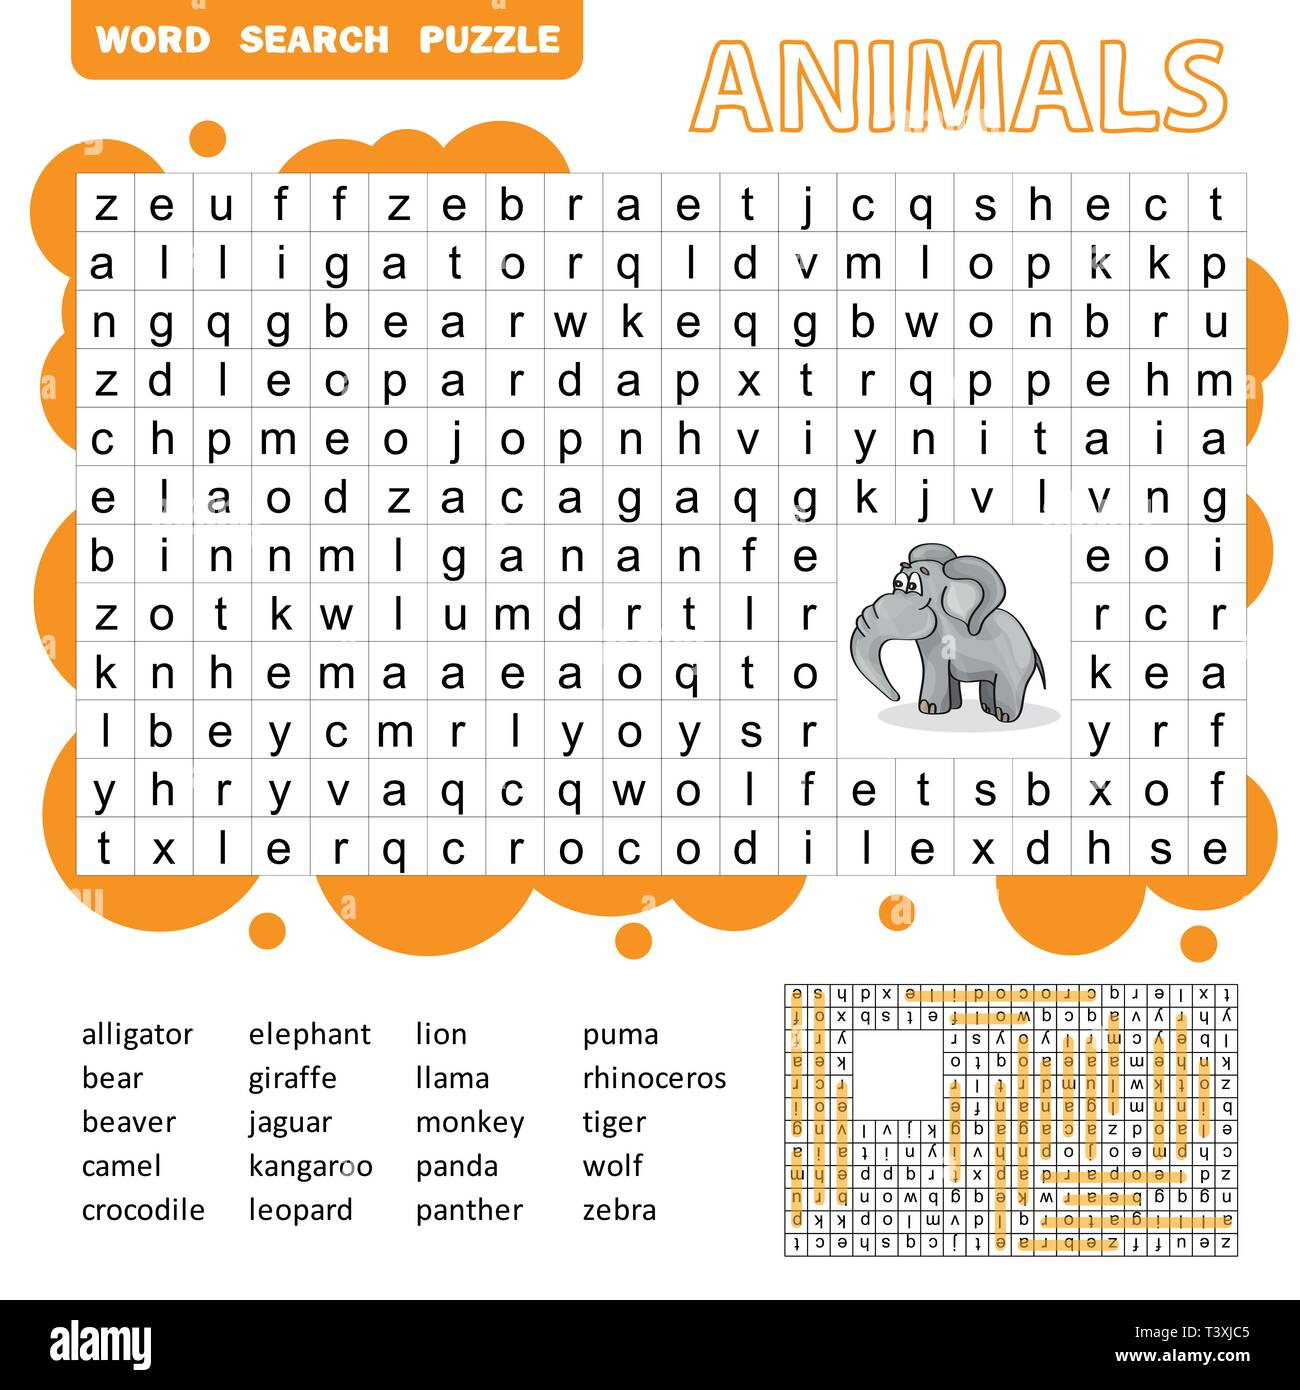 words search puzzle game of animals for preschool kids activity worksheet colorful printable. Black Bedroom Furniture Sets. Home Design Ideas